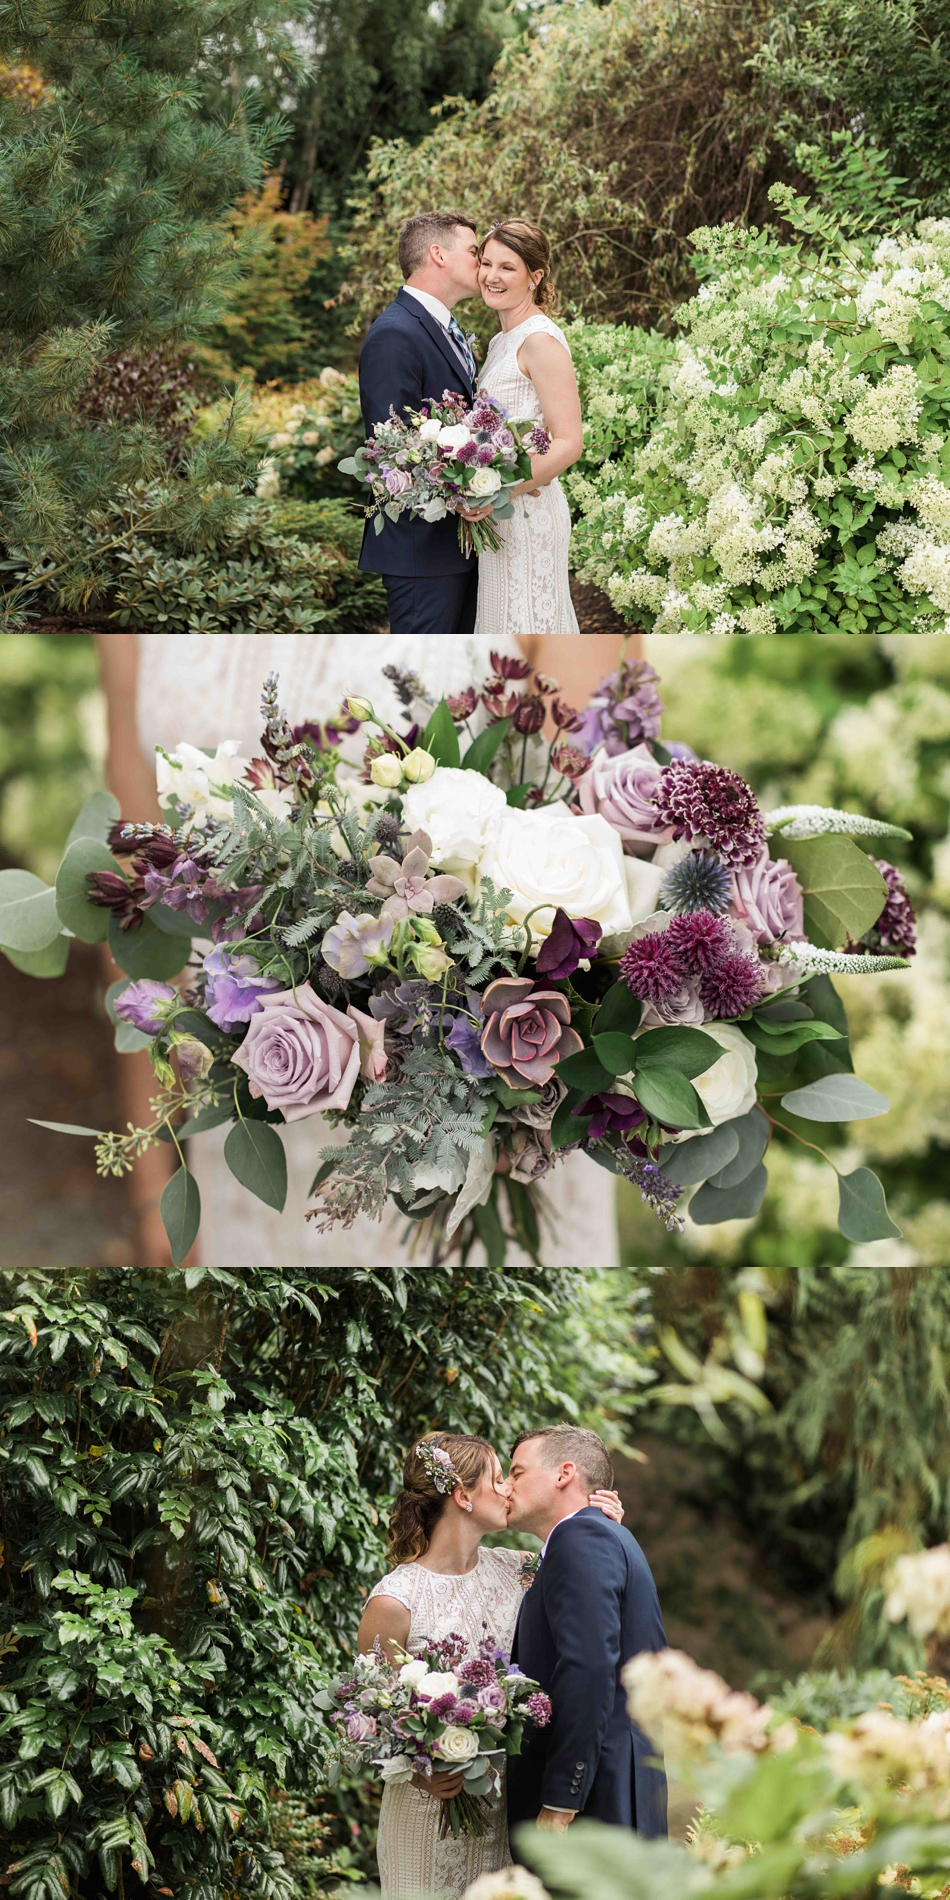 A beautiful flower arrangement at Pine Creek Nursery in Monroe. Photos by Joanna Monger Photography, Snohomish and Seattle Wedding Photographer.